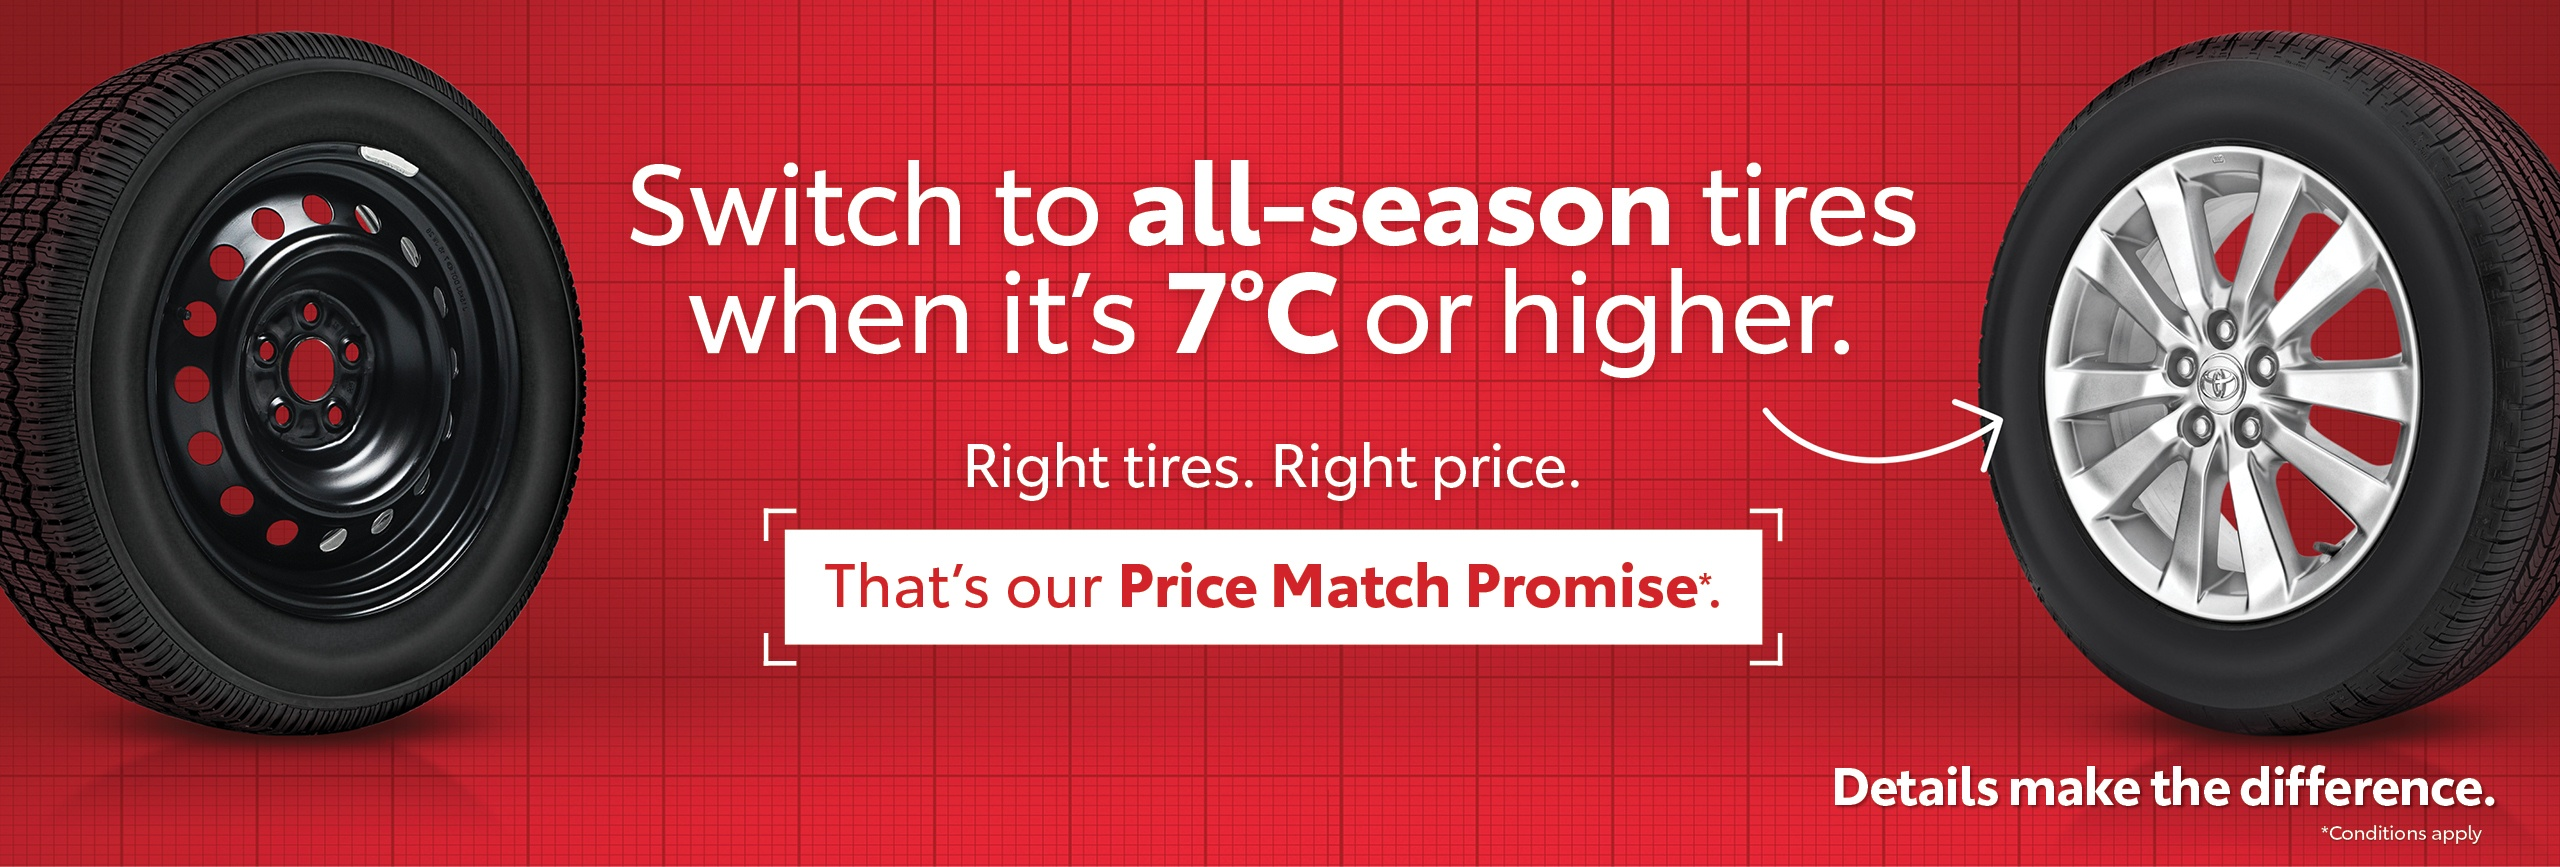 Toyota Tire Price Match Promise Promotion sale in Toronto at Ken Shaw Toyota